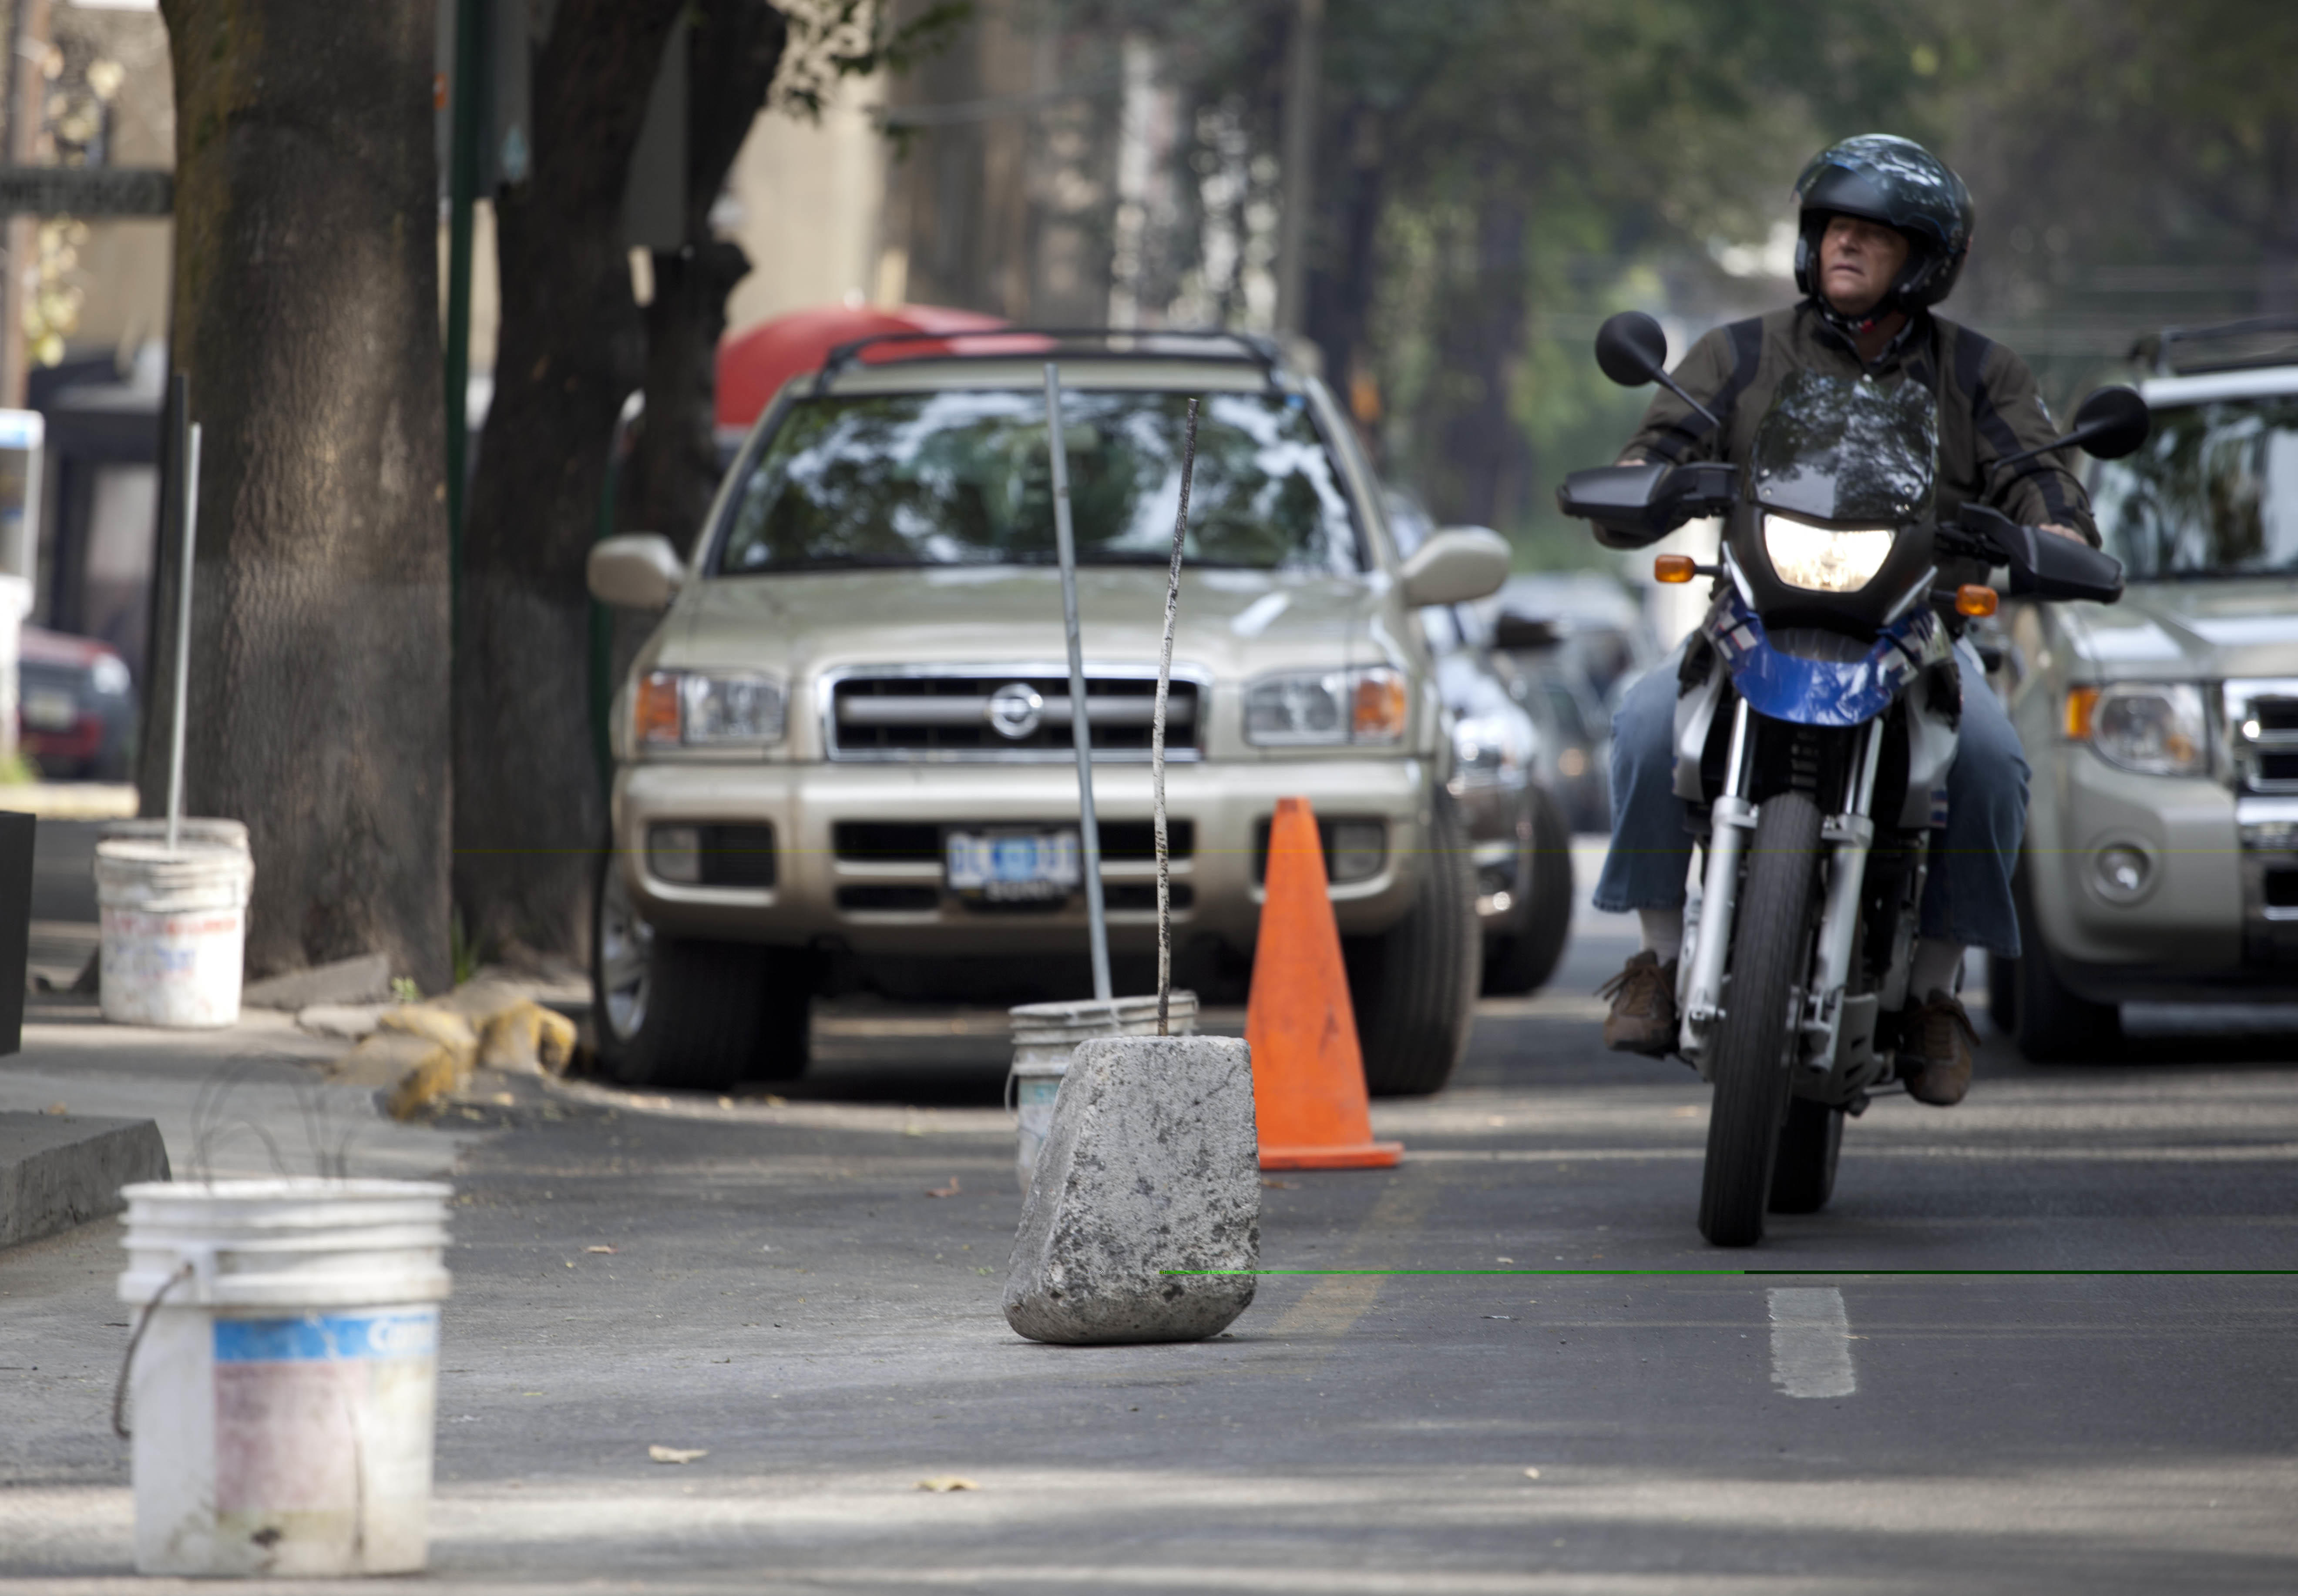 Cement blocks and buckets block off parking spaces along a street in the Condesa neighborhood of Mexico City, Friday, Jan. 18, 2013. Every day before dawn, dozens of men appear in the Mexican capital's hip Condesa neighborhood and block off parking spaces along entire streets using water jugs, cardboard boxes, buckets, crates and even blocks of cement. Here and in other well-to-do areas of traffic-choked Mexico City, authorities are trying to take back the streets by installing parking meters. On Sunday, Condesa's residents will decide in a referendum whether they want the meters on their streets. (AP Photo/Eduardo Verdugo)